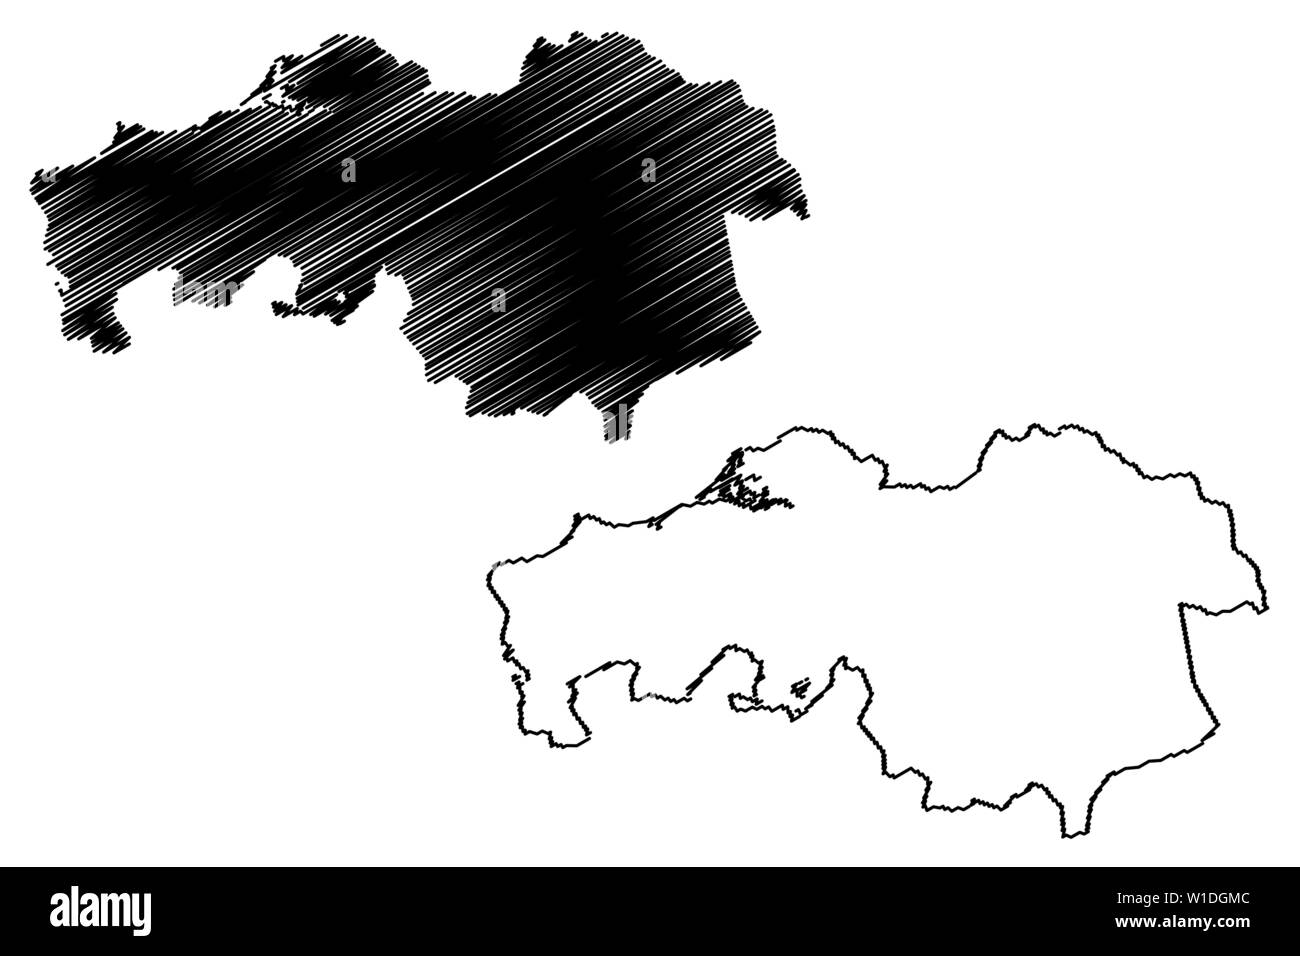 North Brabant province (Kingdom of the Netherlands, Holland) map vector illustration, scribble sketch Brabant map Stock Vector